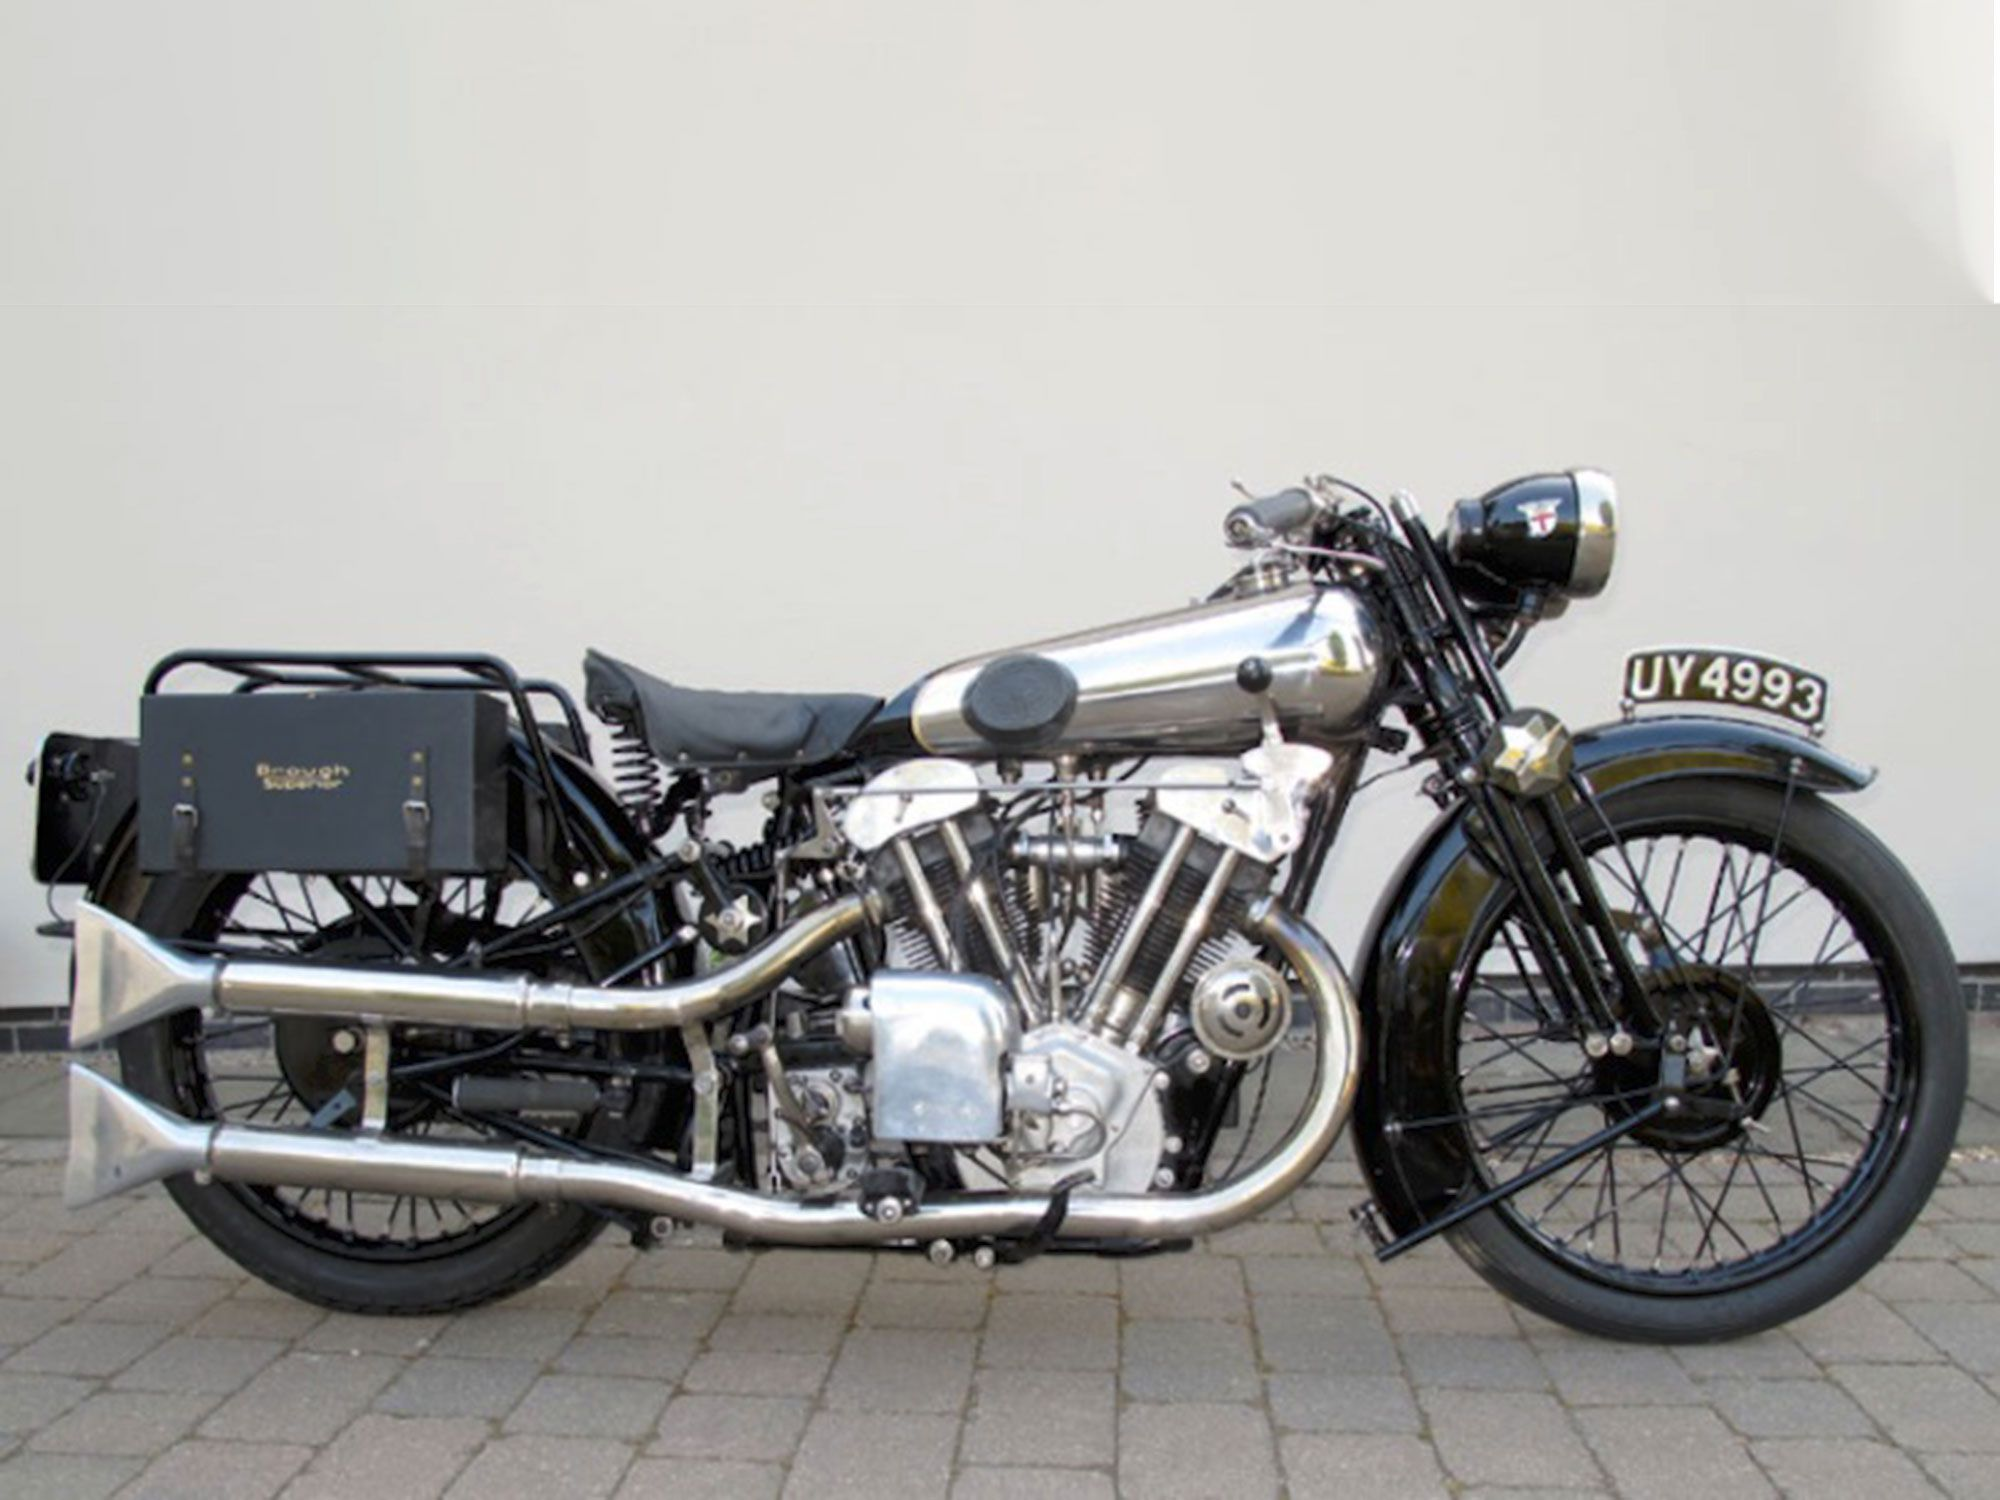 5 Of The World S Most Expensive Motorcycles Cycle World Detailed, turn by turn itinerary. cycle world